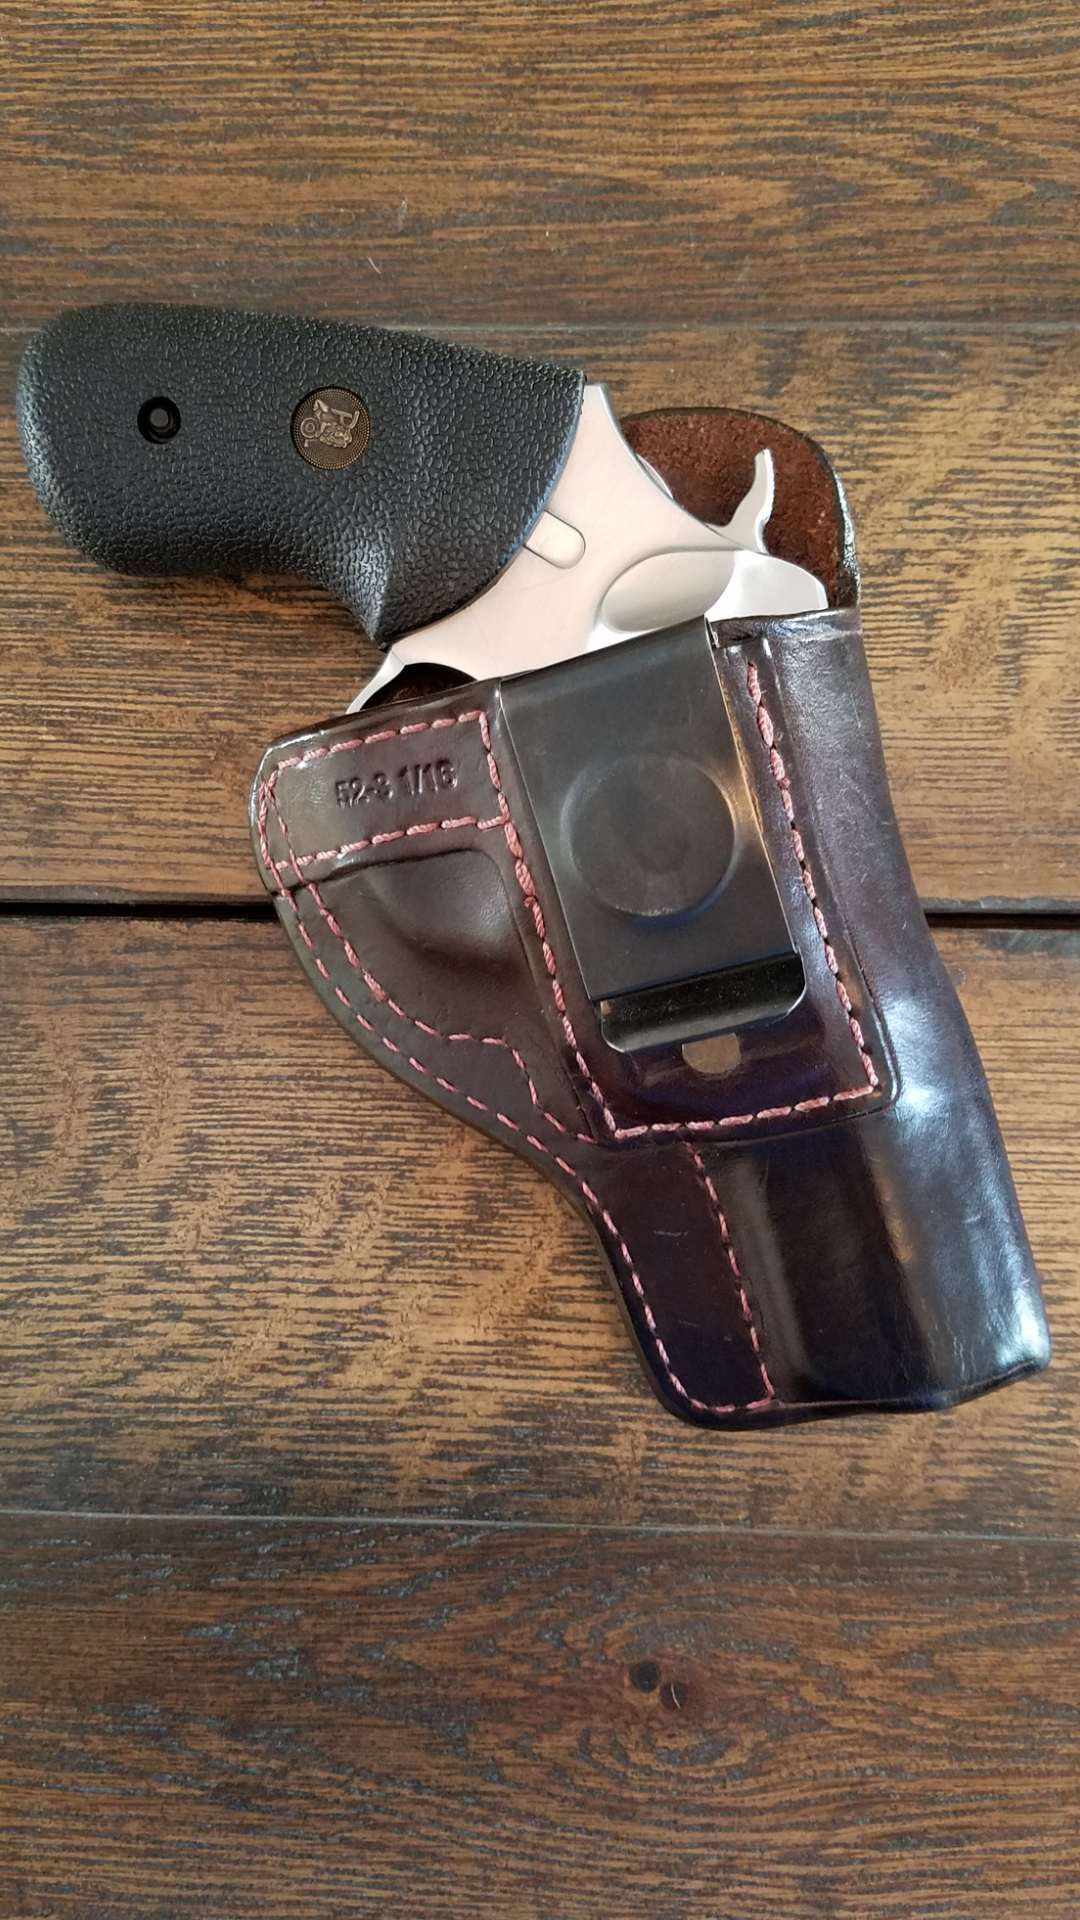 A Good IWB Leather Holster with Clip?-screenshot_20191010-100224_gallery_1570719824872.jpg